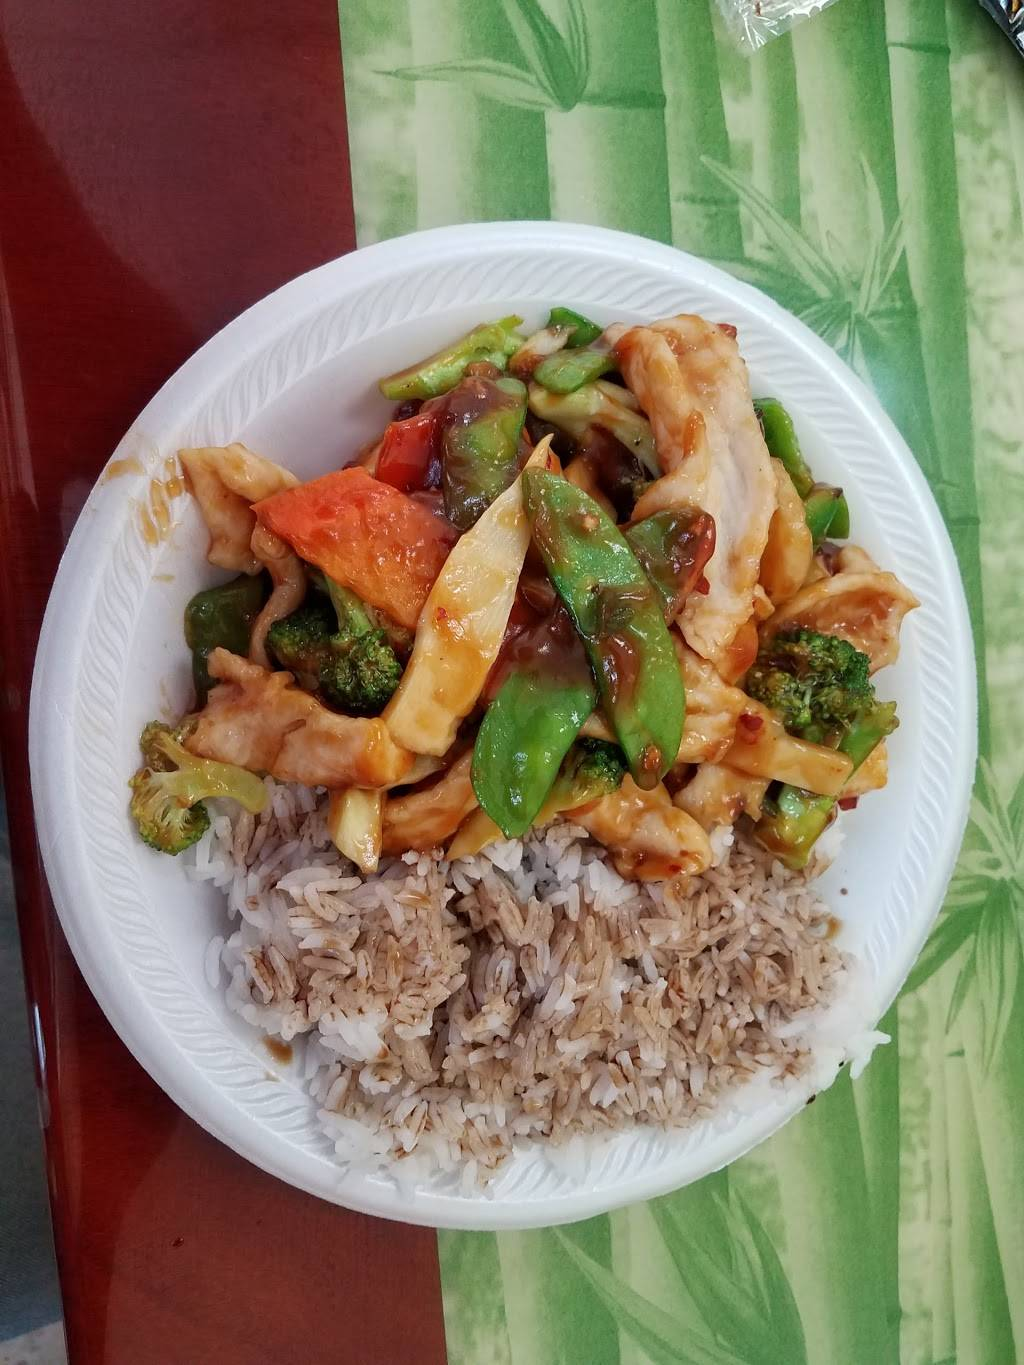 Chinese Gourmet   restaurant   44 Manchester Ave # E, Forked River, NJ 08731, USA   6092423366 OR +1 609-242-3366